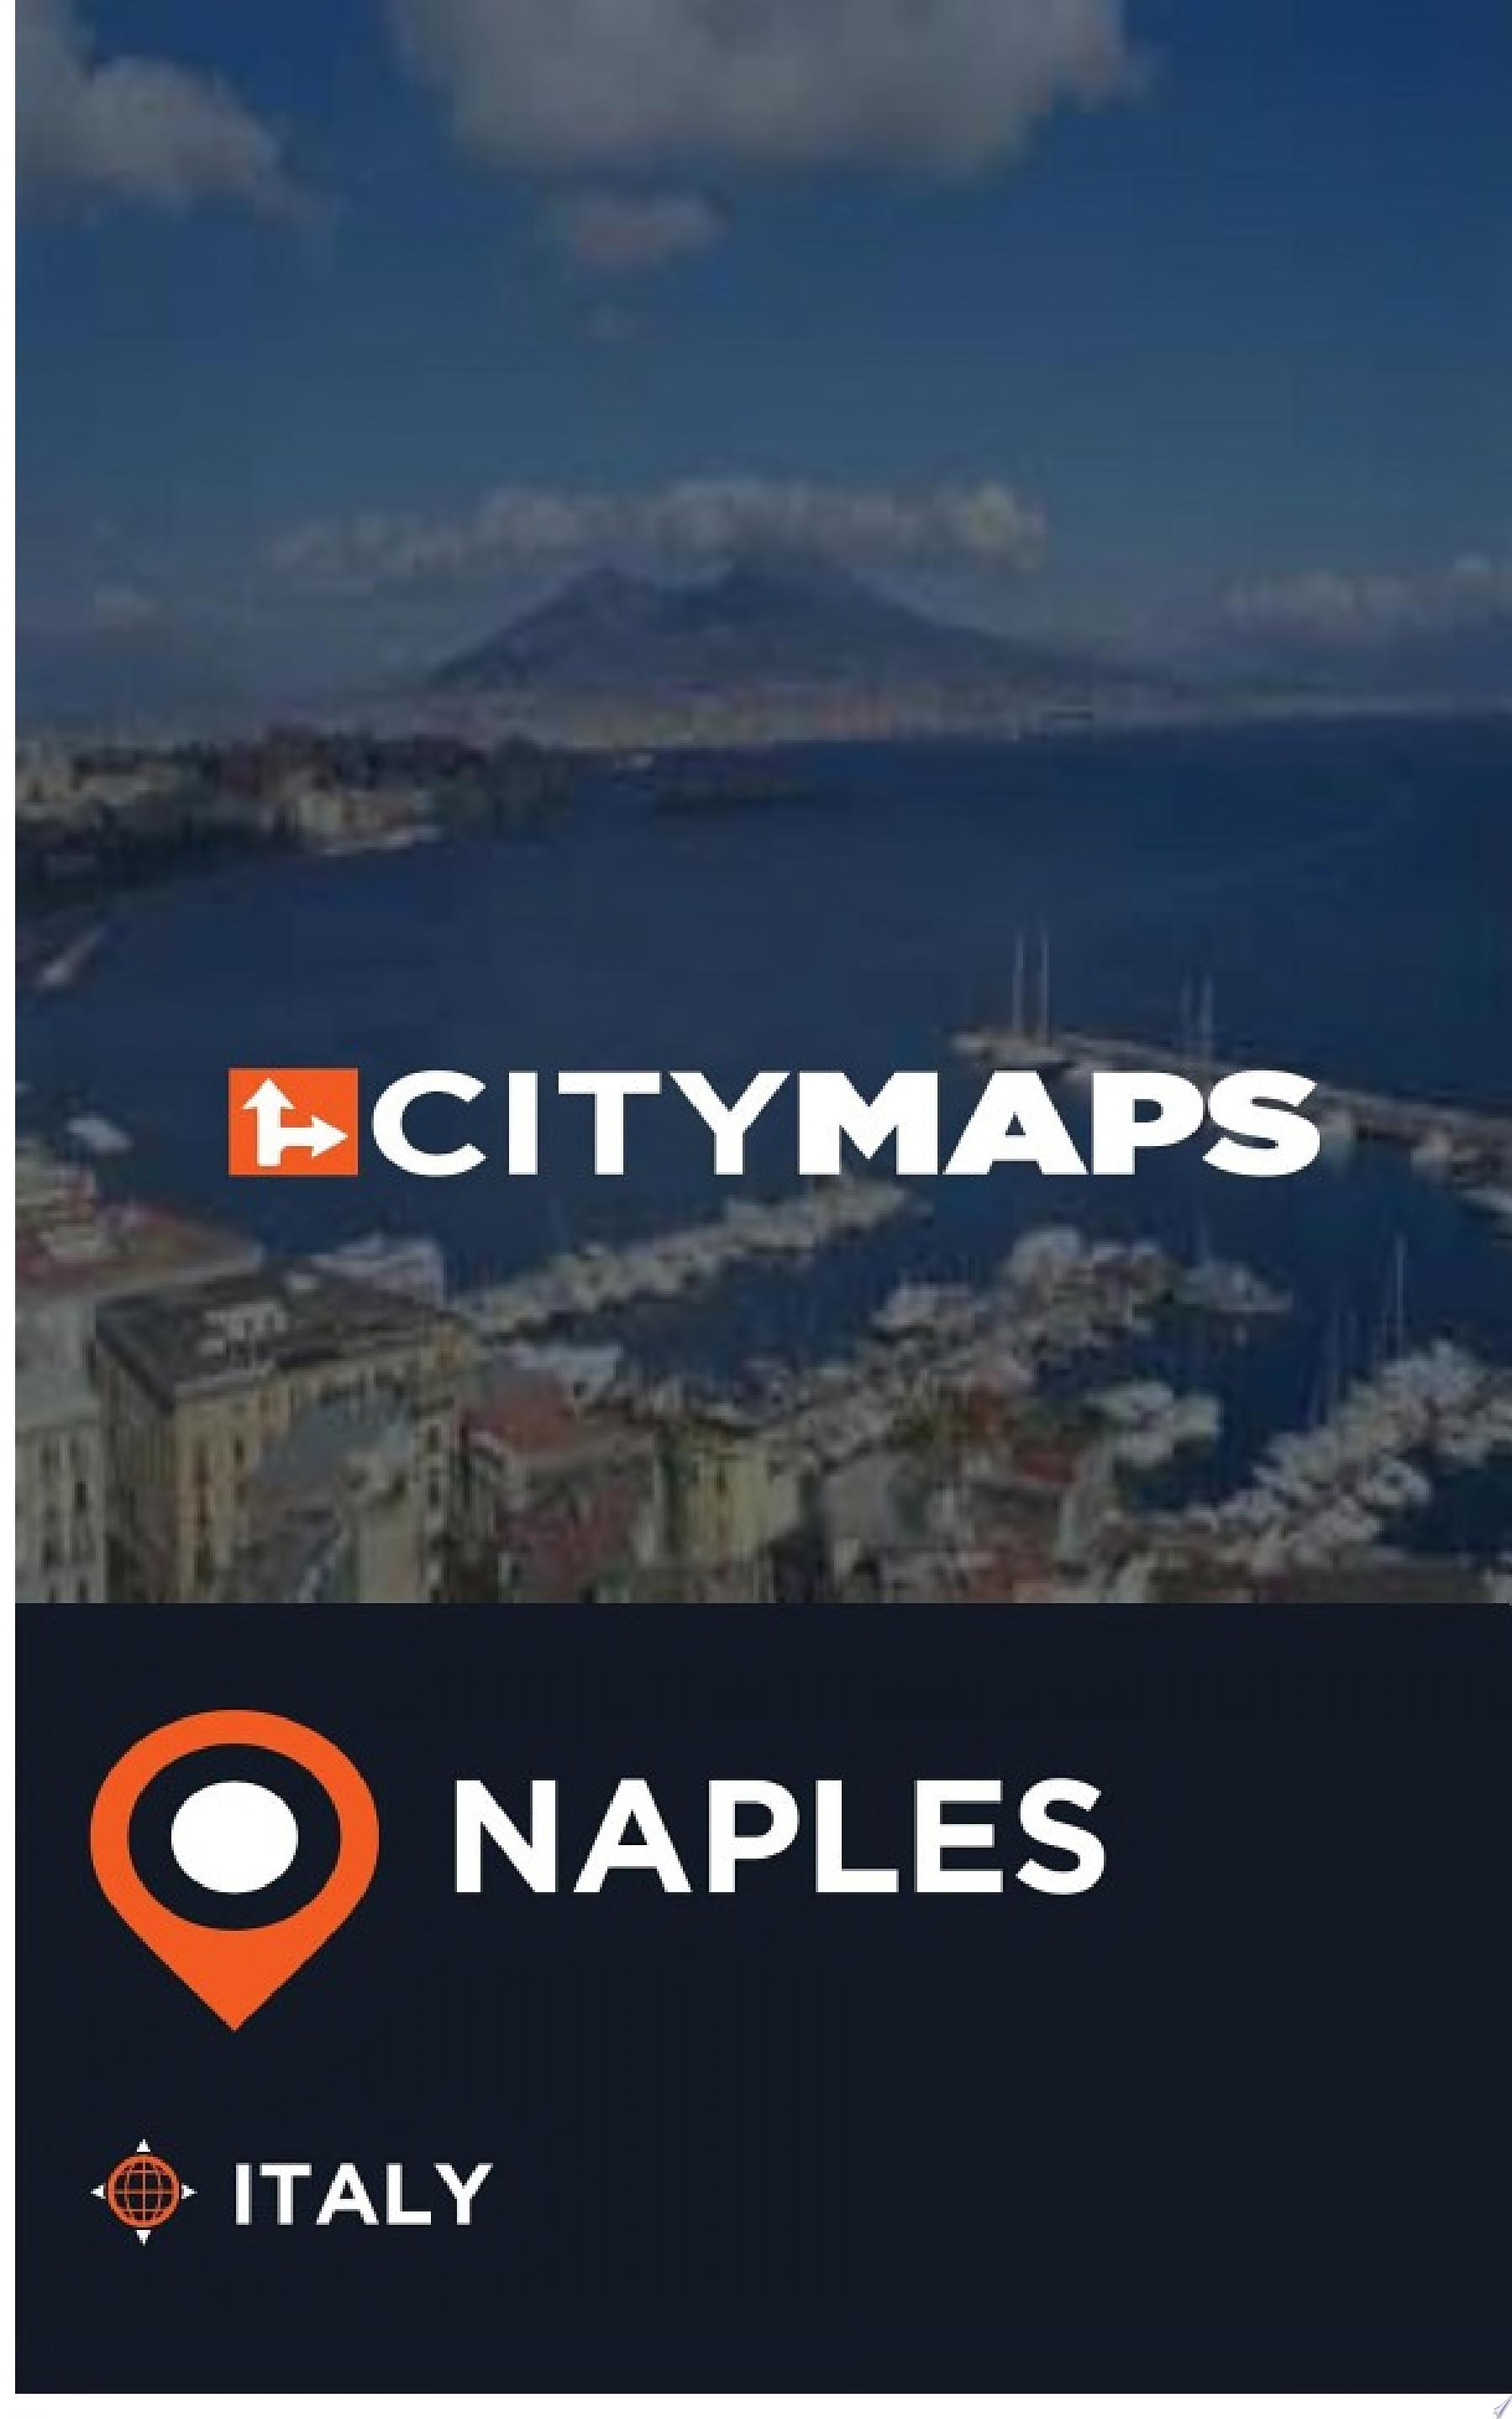 City Maps Naples Italy